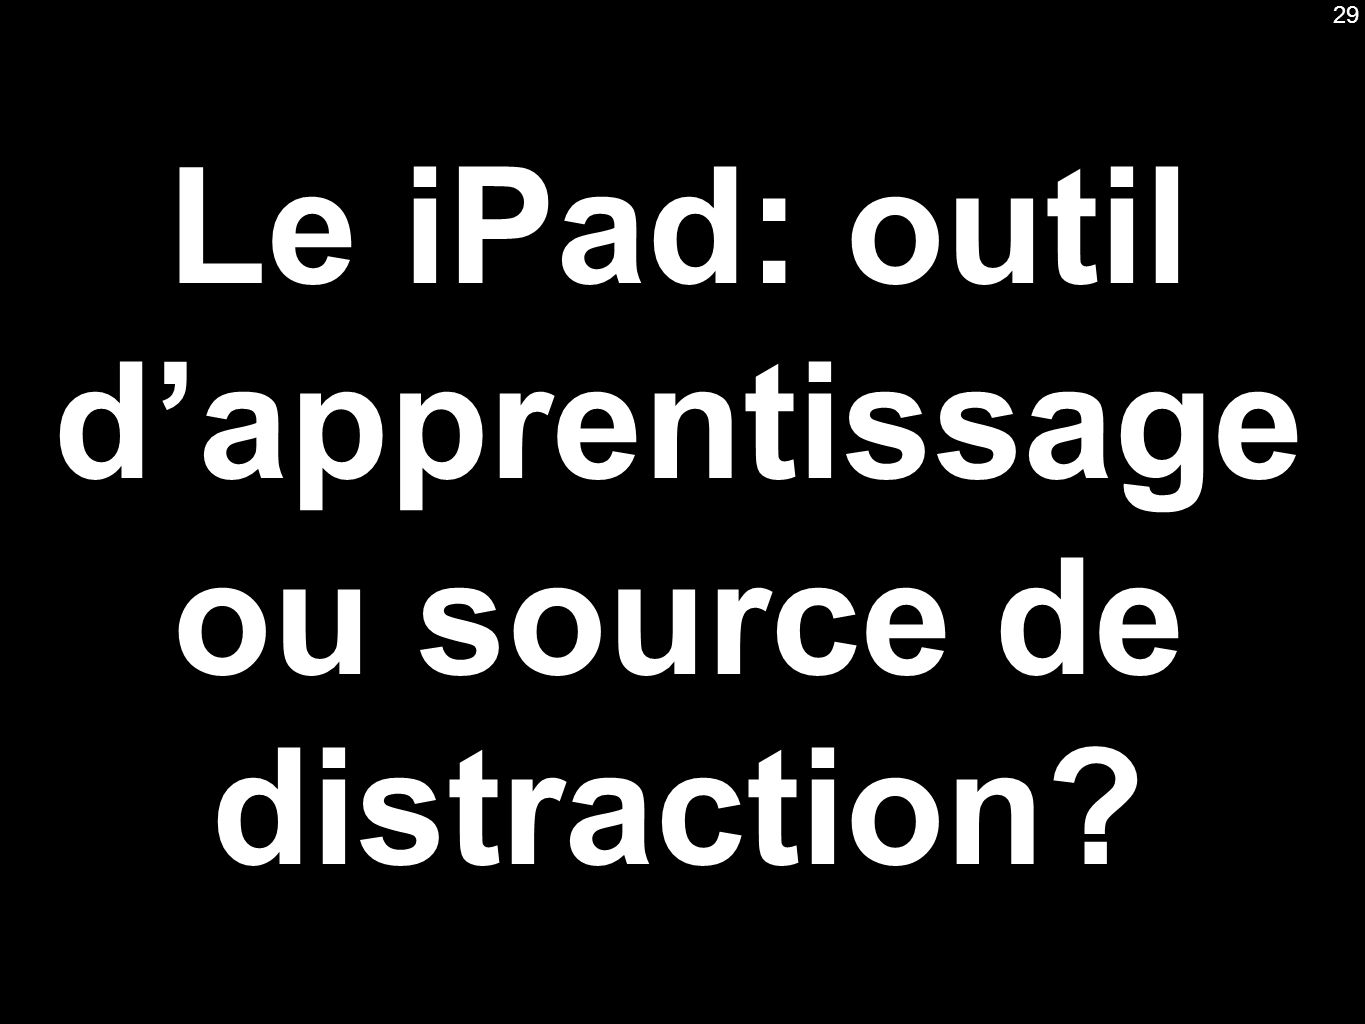 Le iPad: outil dapprentissage ou source de distraction 29